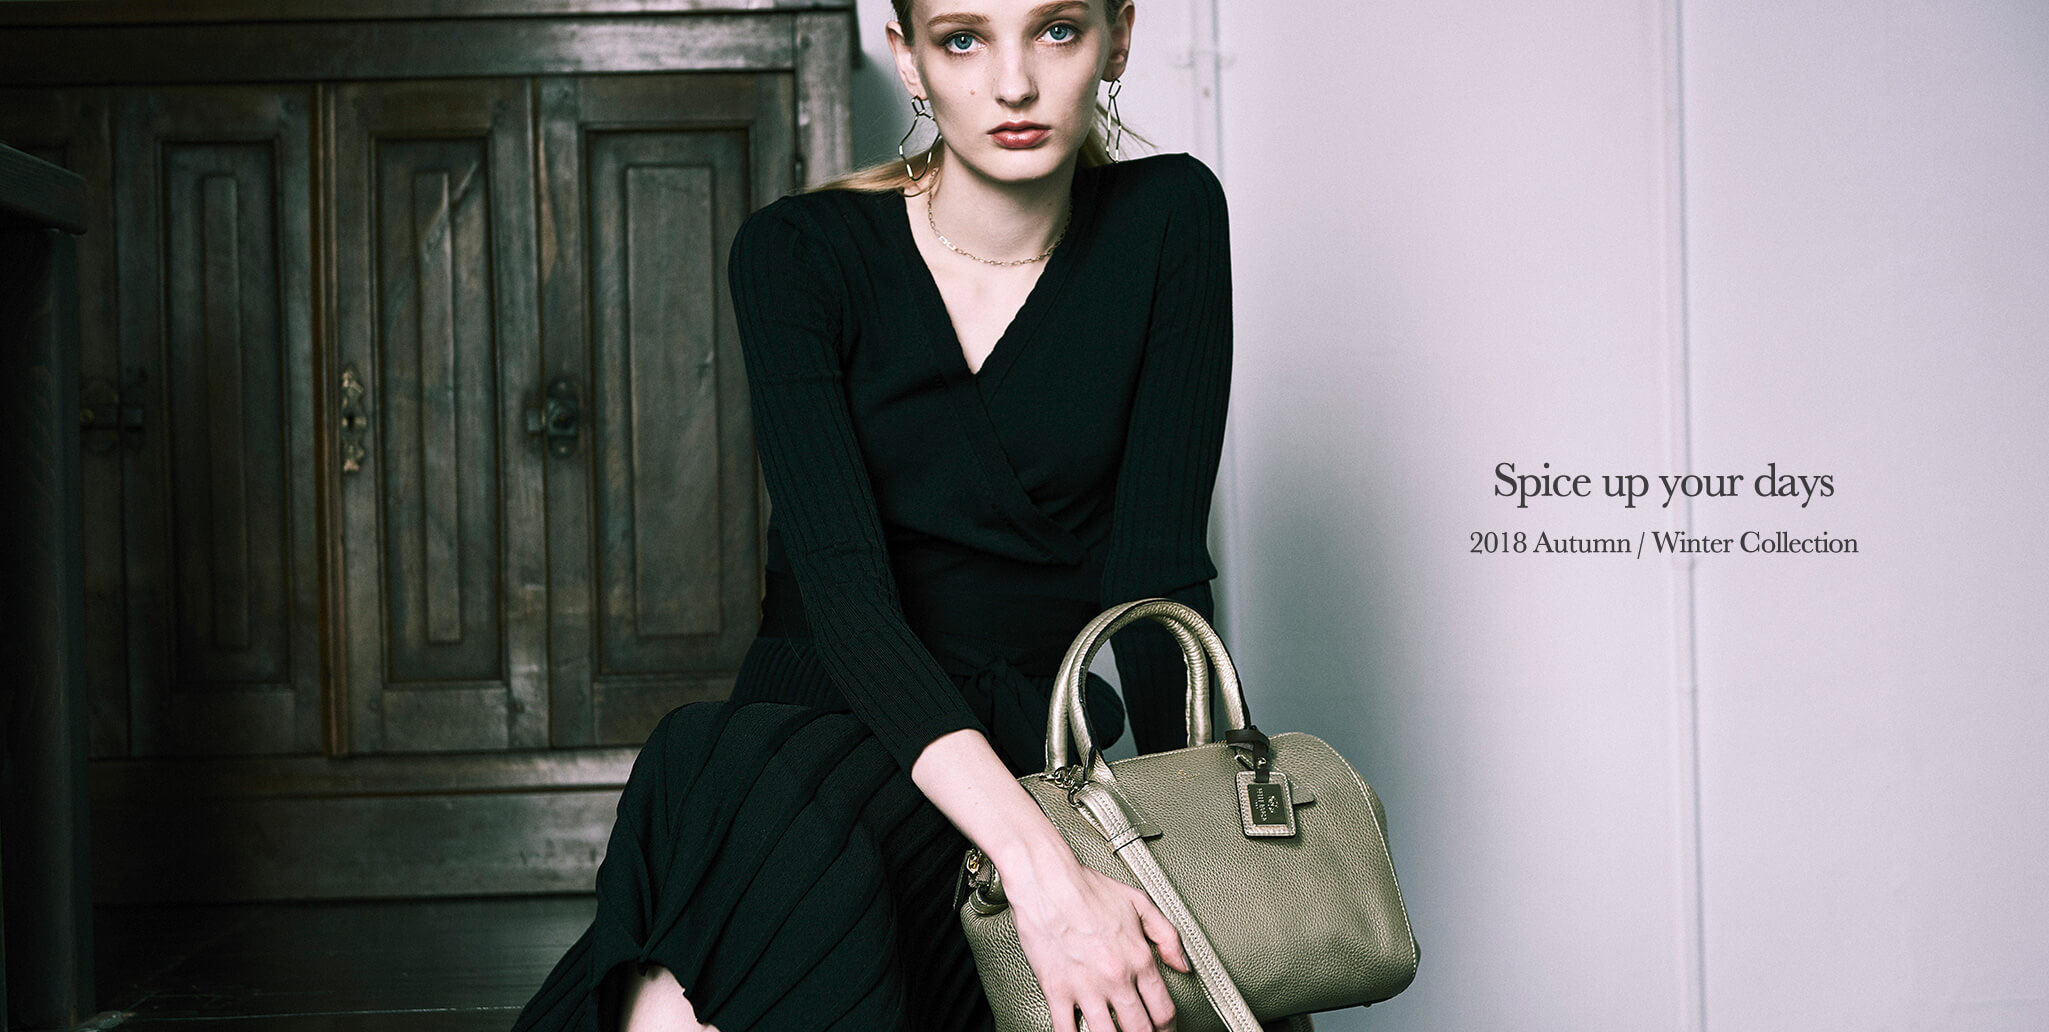 PELLE BORSA Spice up your days 2018 Autumn / Winter Collection Reinette新色